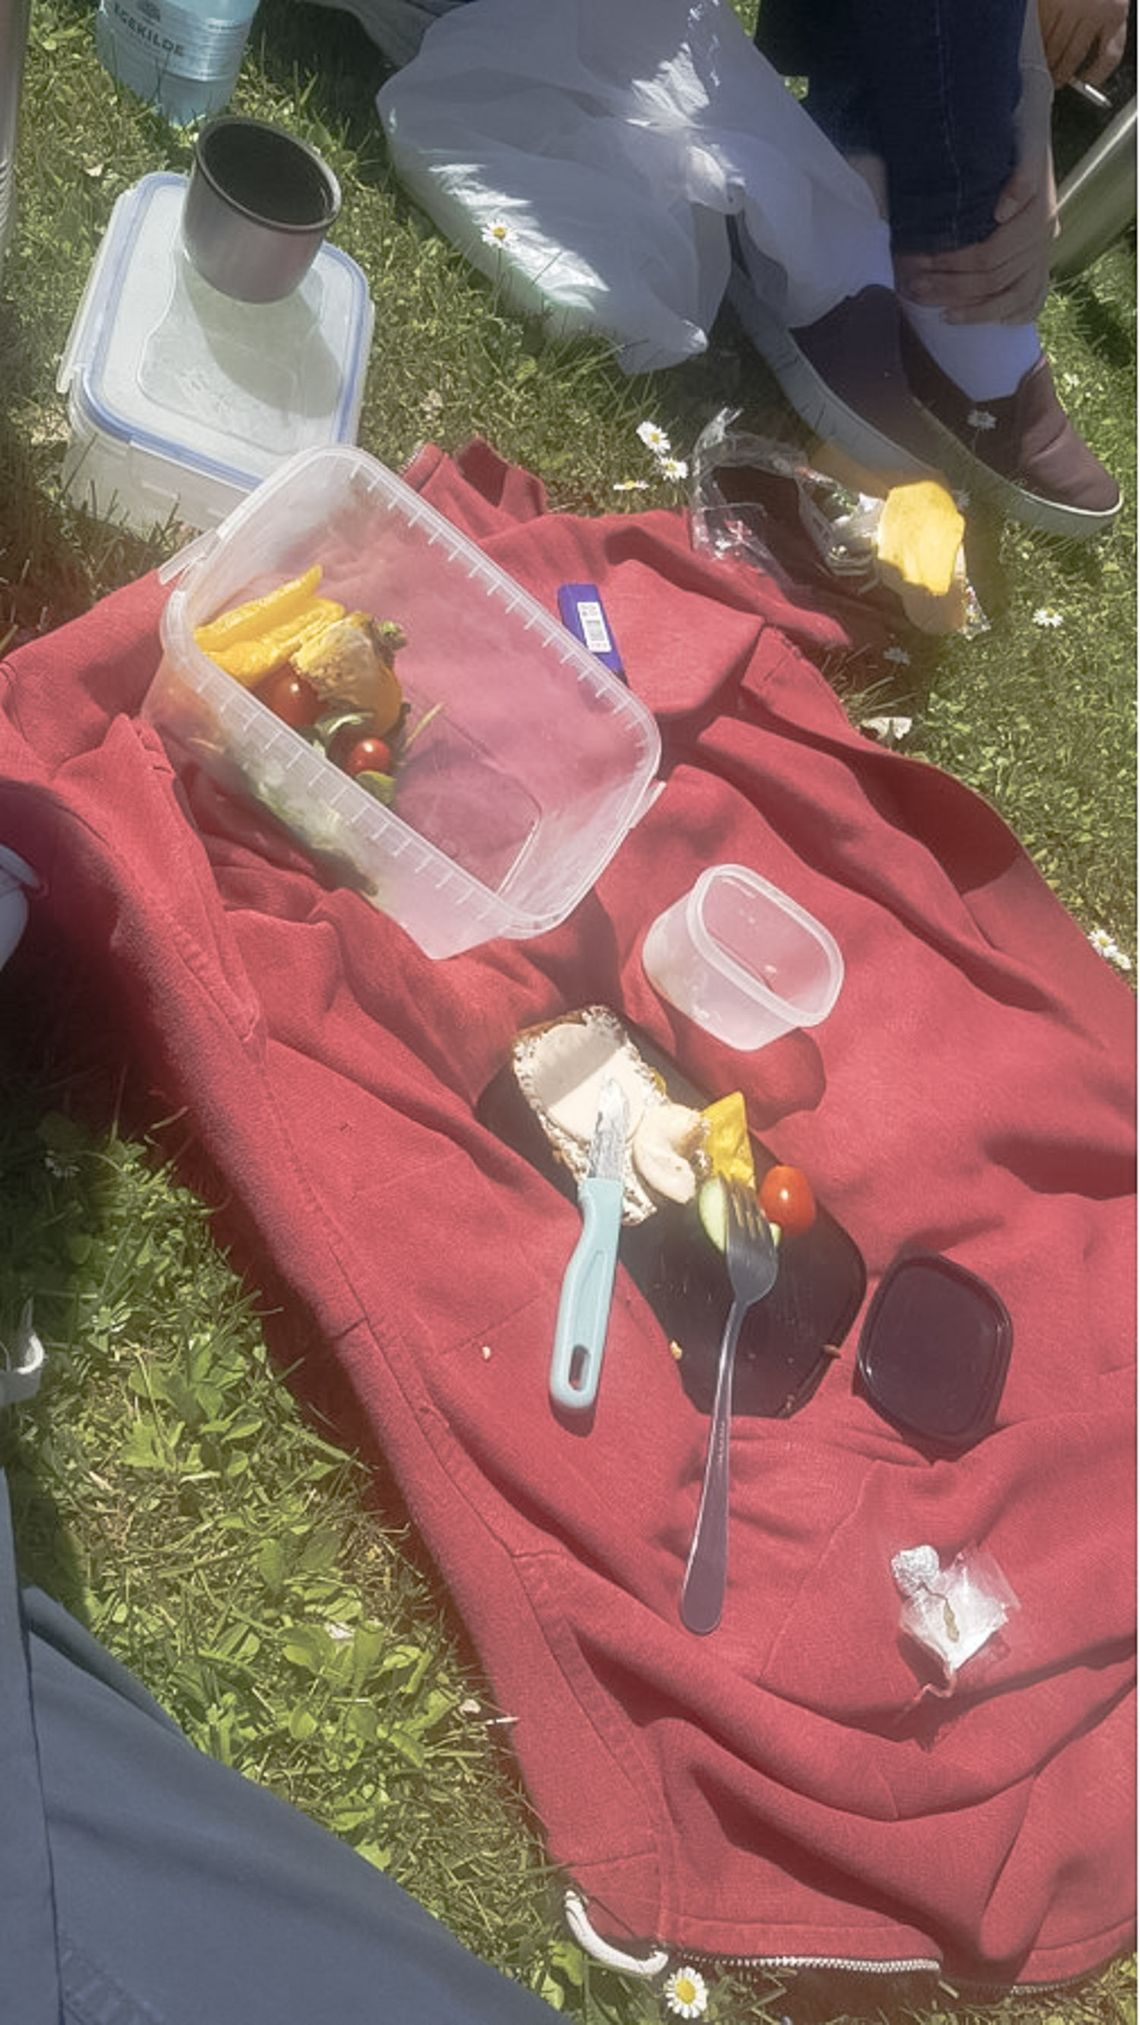 A red blanket on grass with tupperware with food on it.